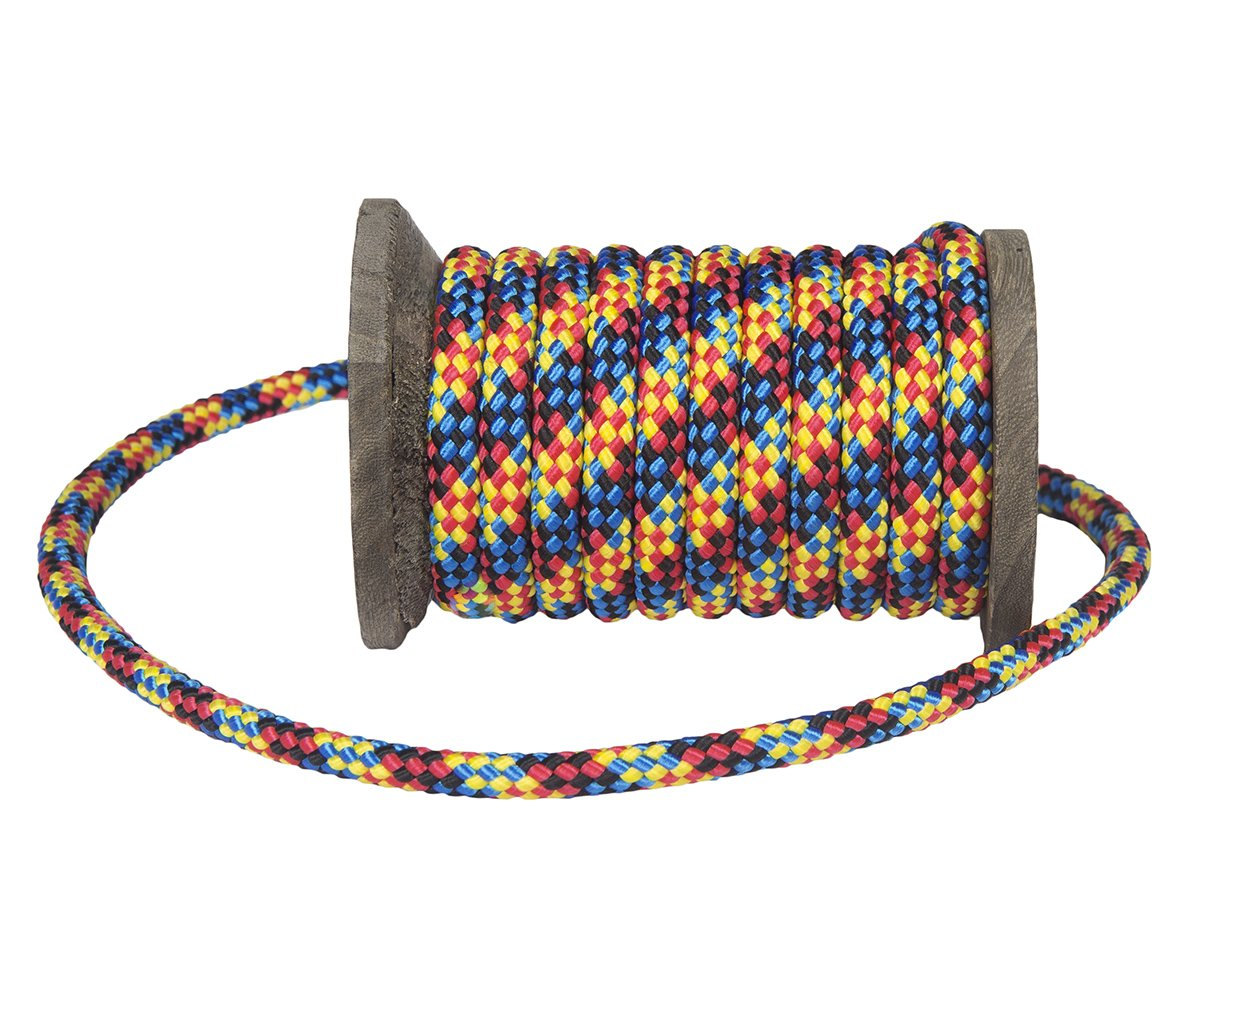 Ravenox by FMS Diamond Braid MFP Utility Rope | (Multi-Color)(3/8-in x 100 FT) | General Purpose Utility Cord for Camping, Bug Out Bags & Boating | Variety of Colors and Lengths | Made in The USA by FMS